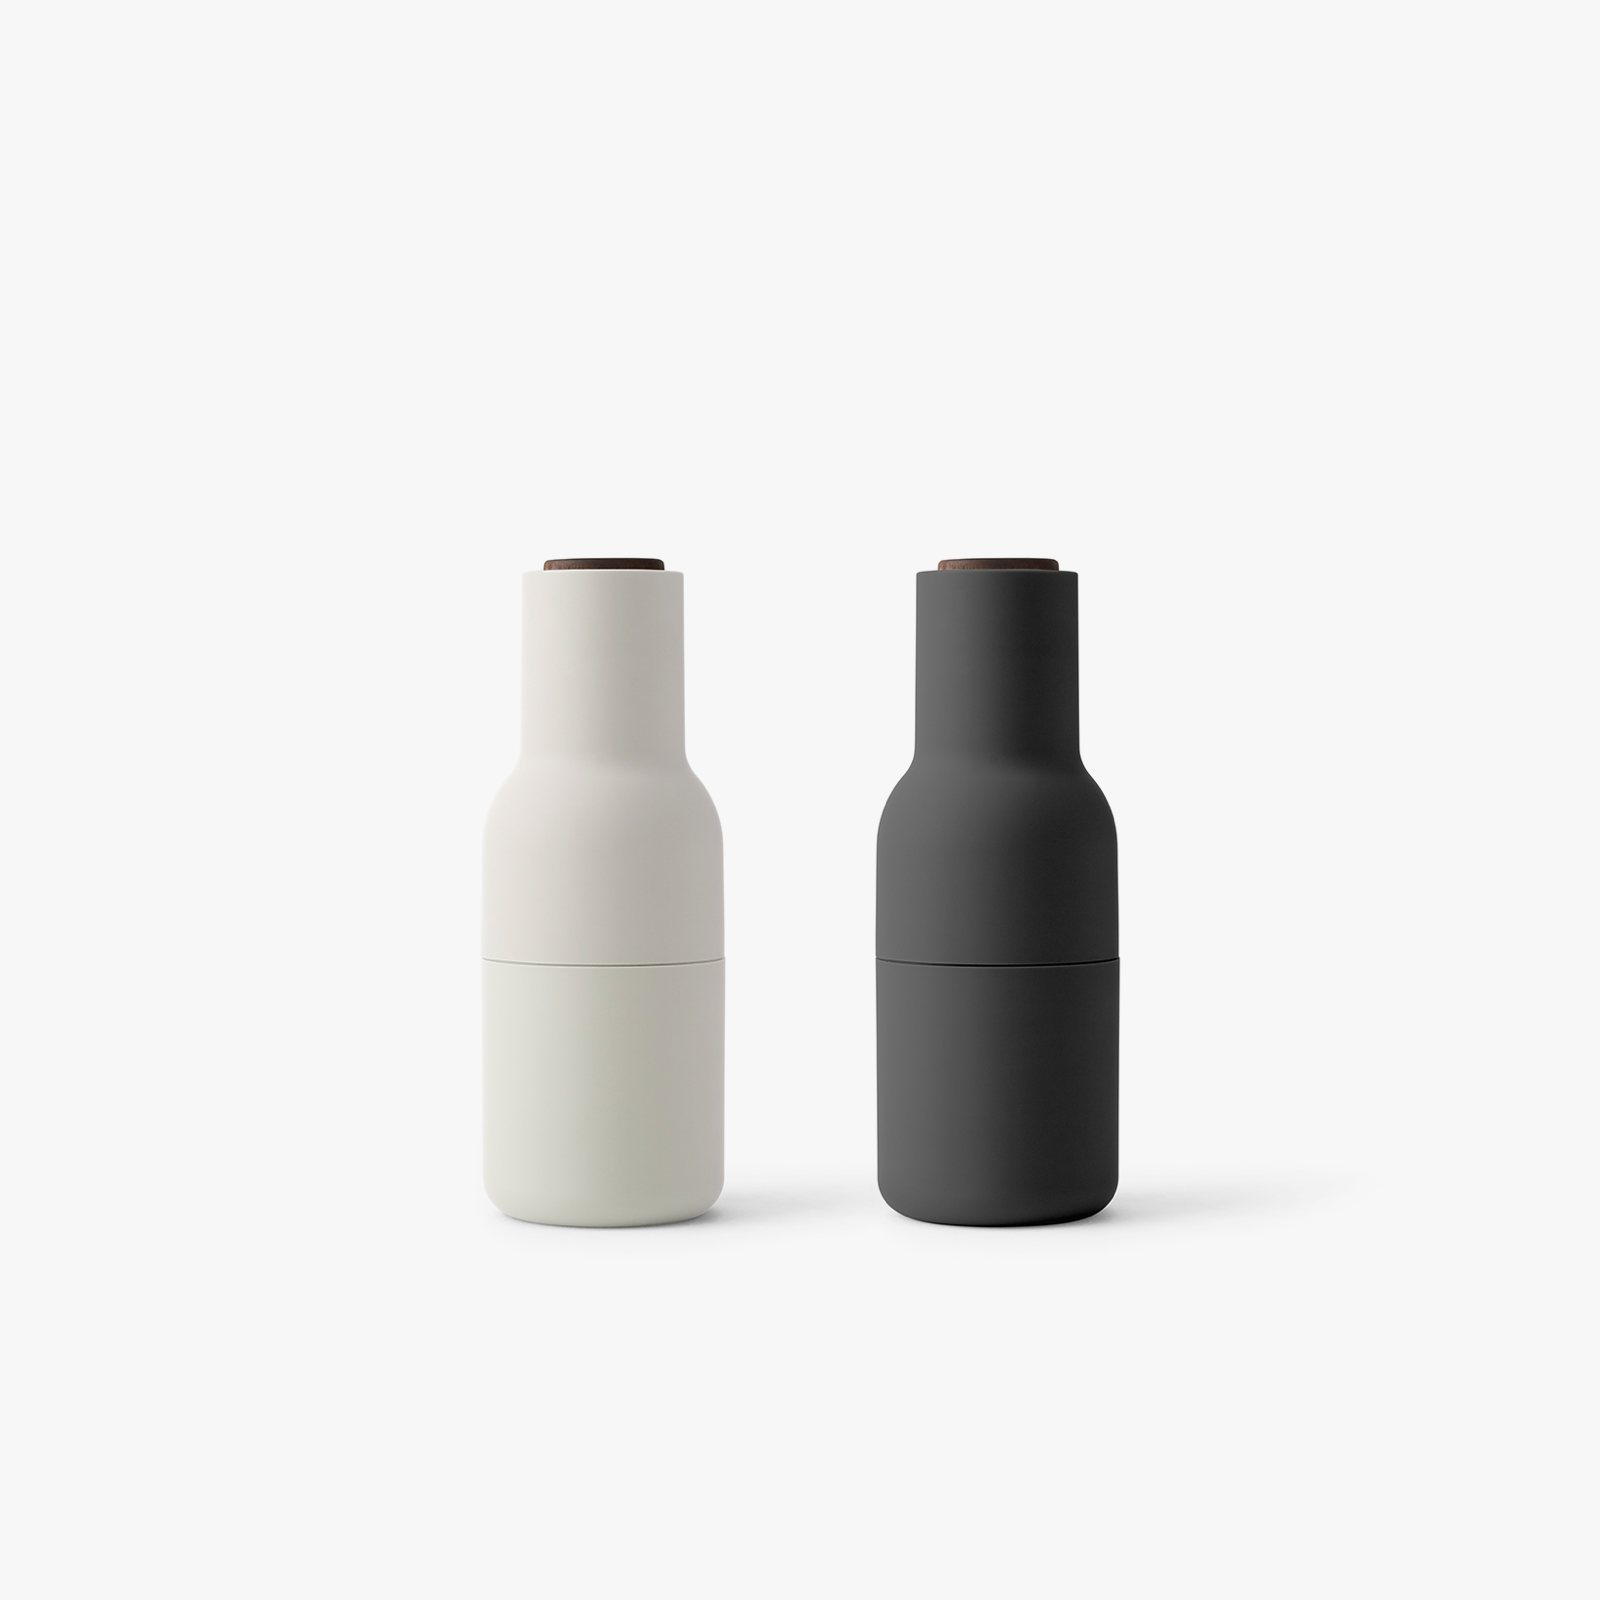 Ypperlig Bottle Grinders by Norm Architects for Menu | UP interiors ID-19